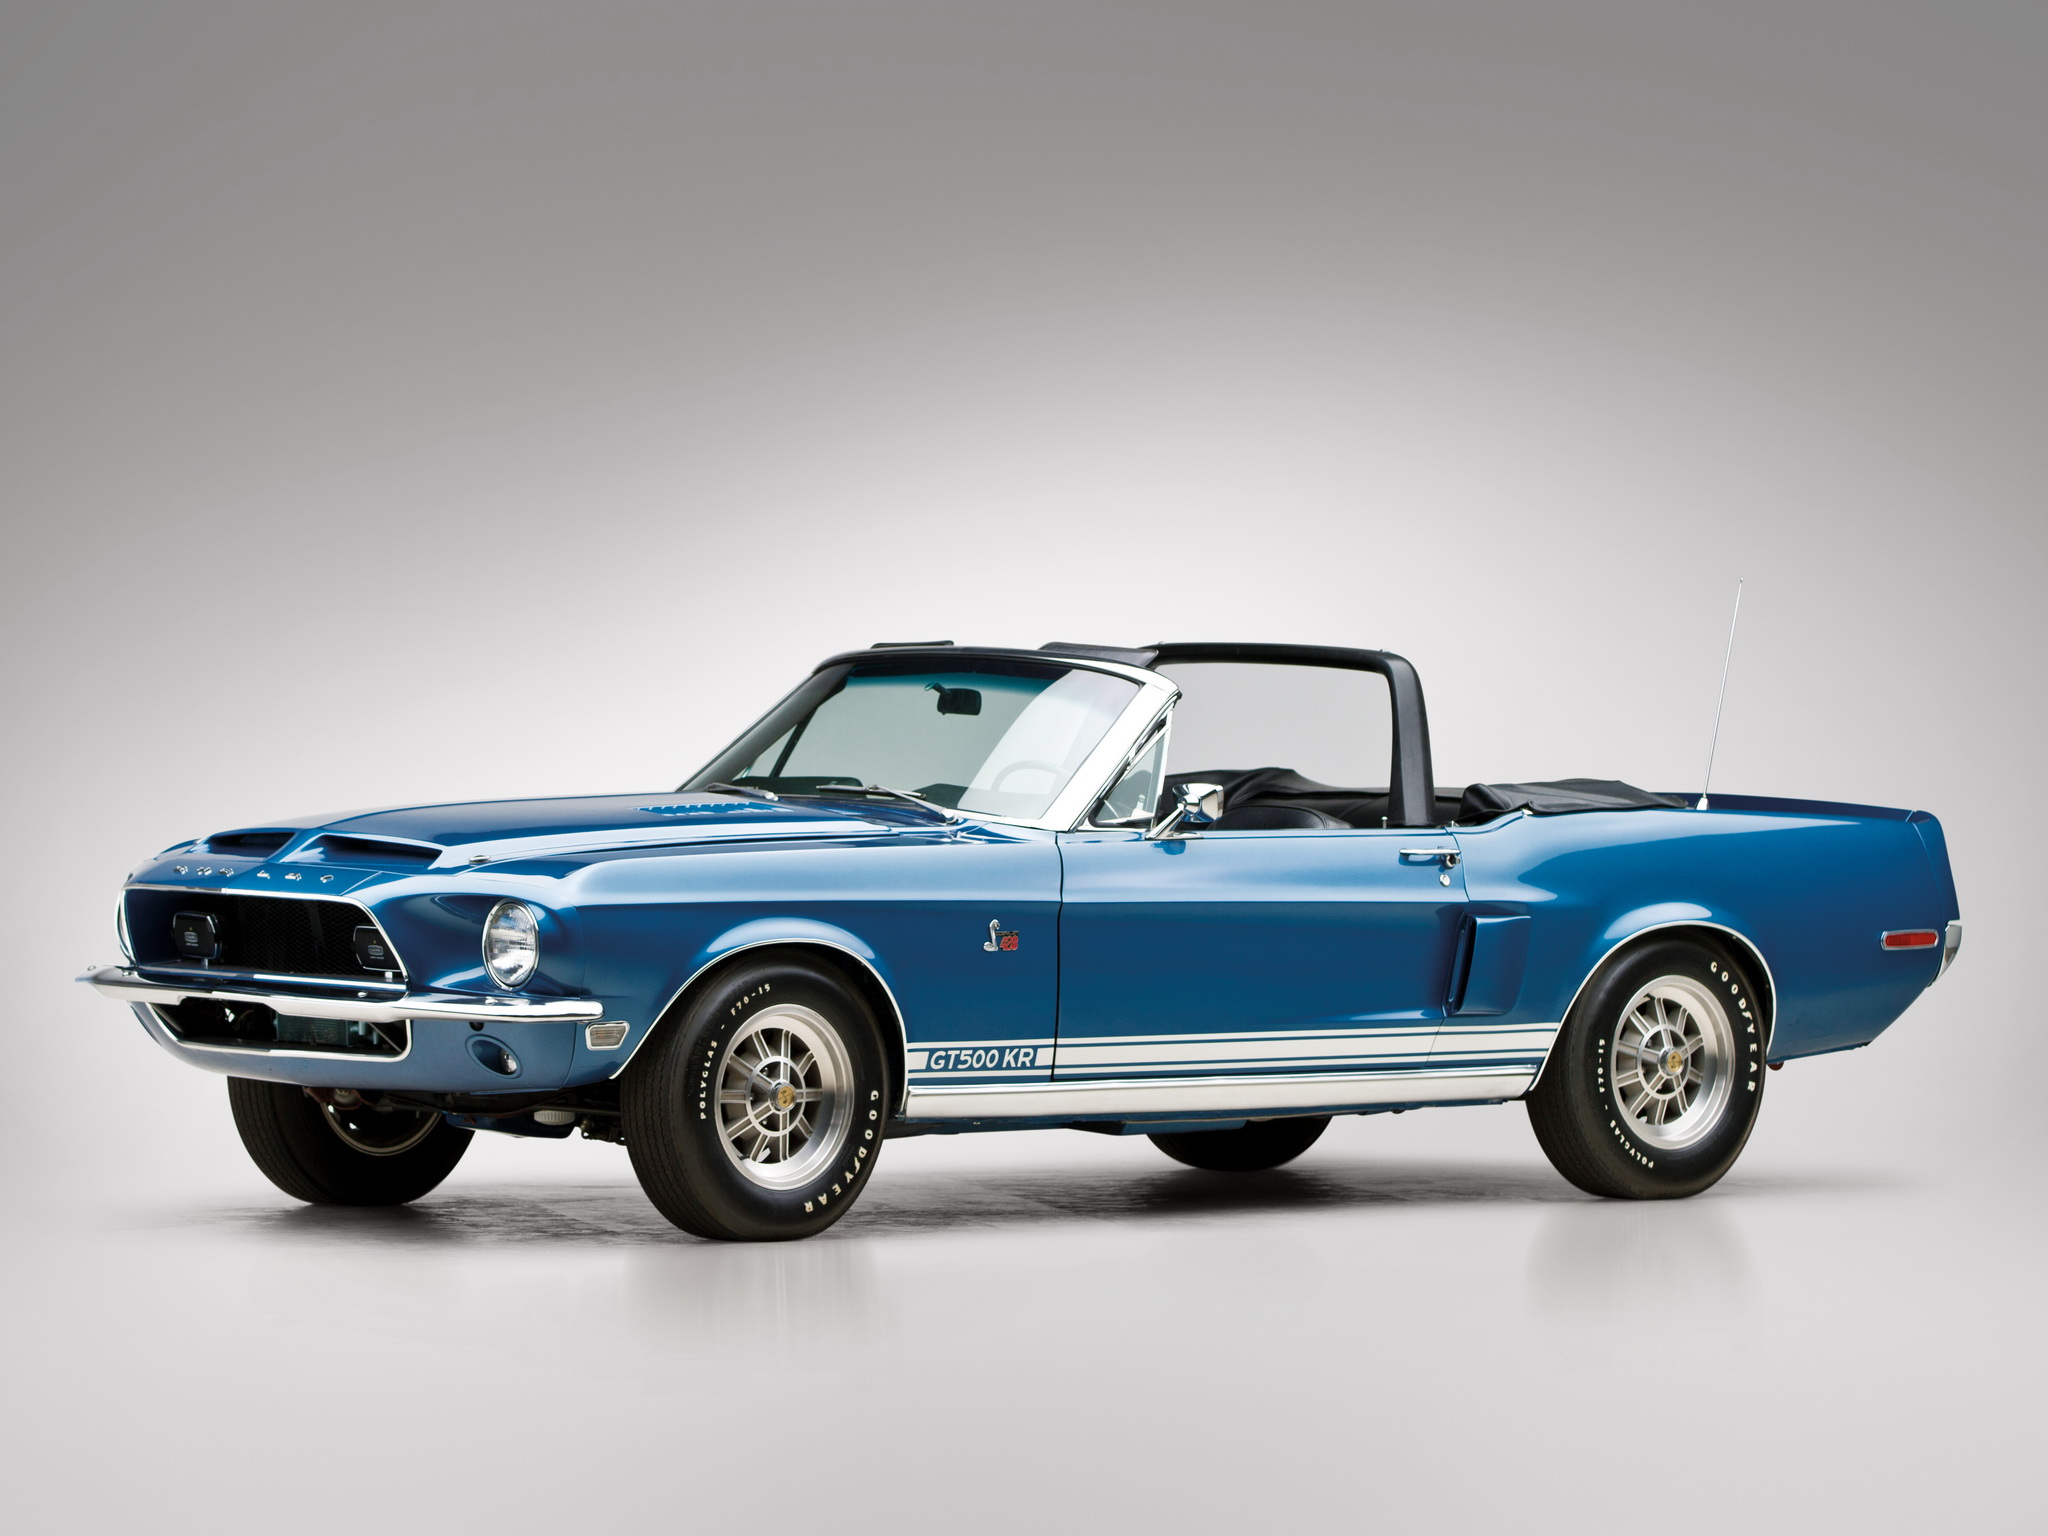 1968 Mustang Backgrounds Related